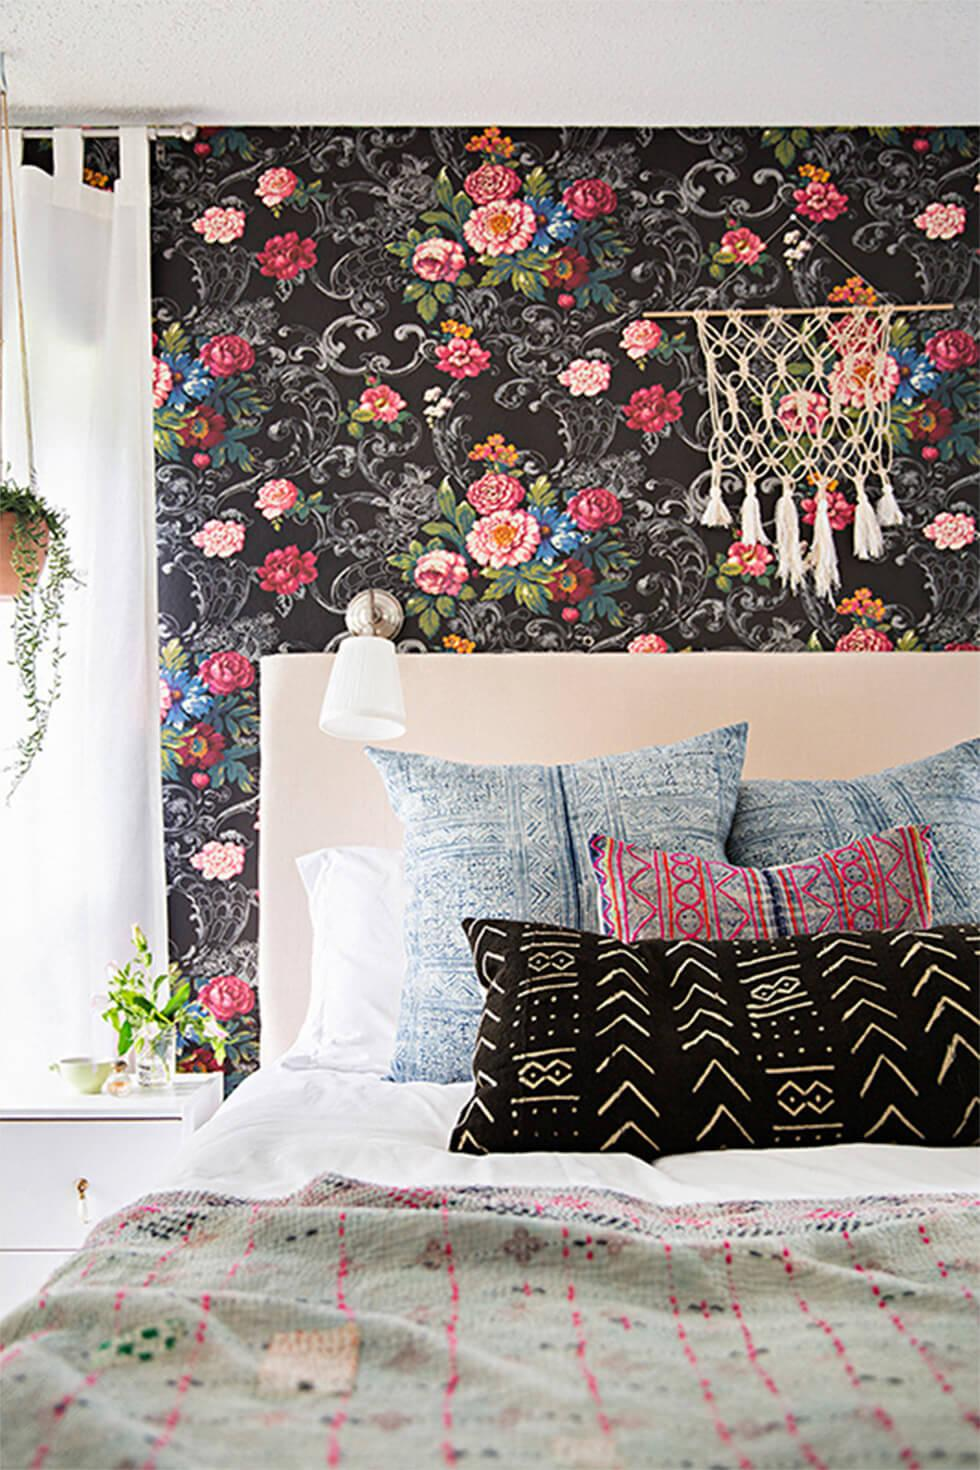 Bedroom with mixed print wallpaper and bedding